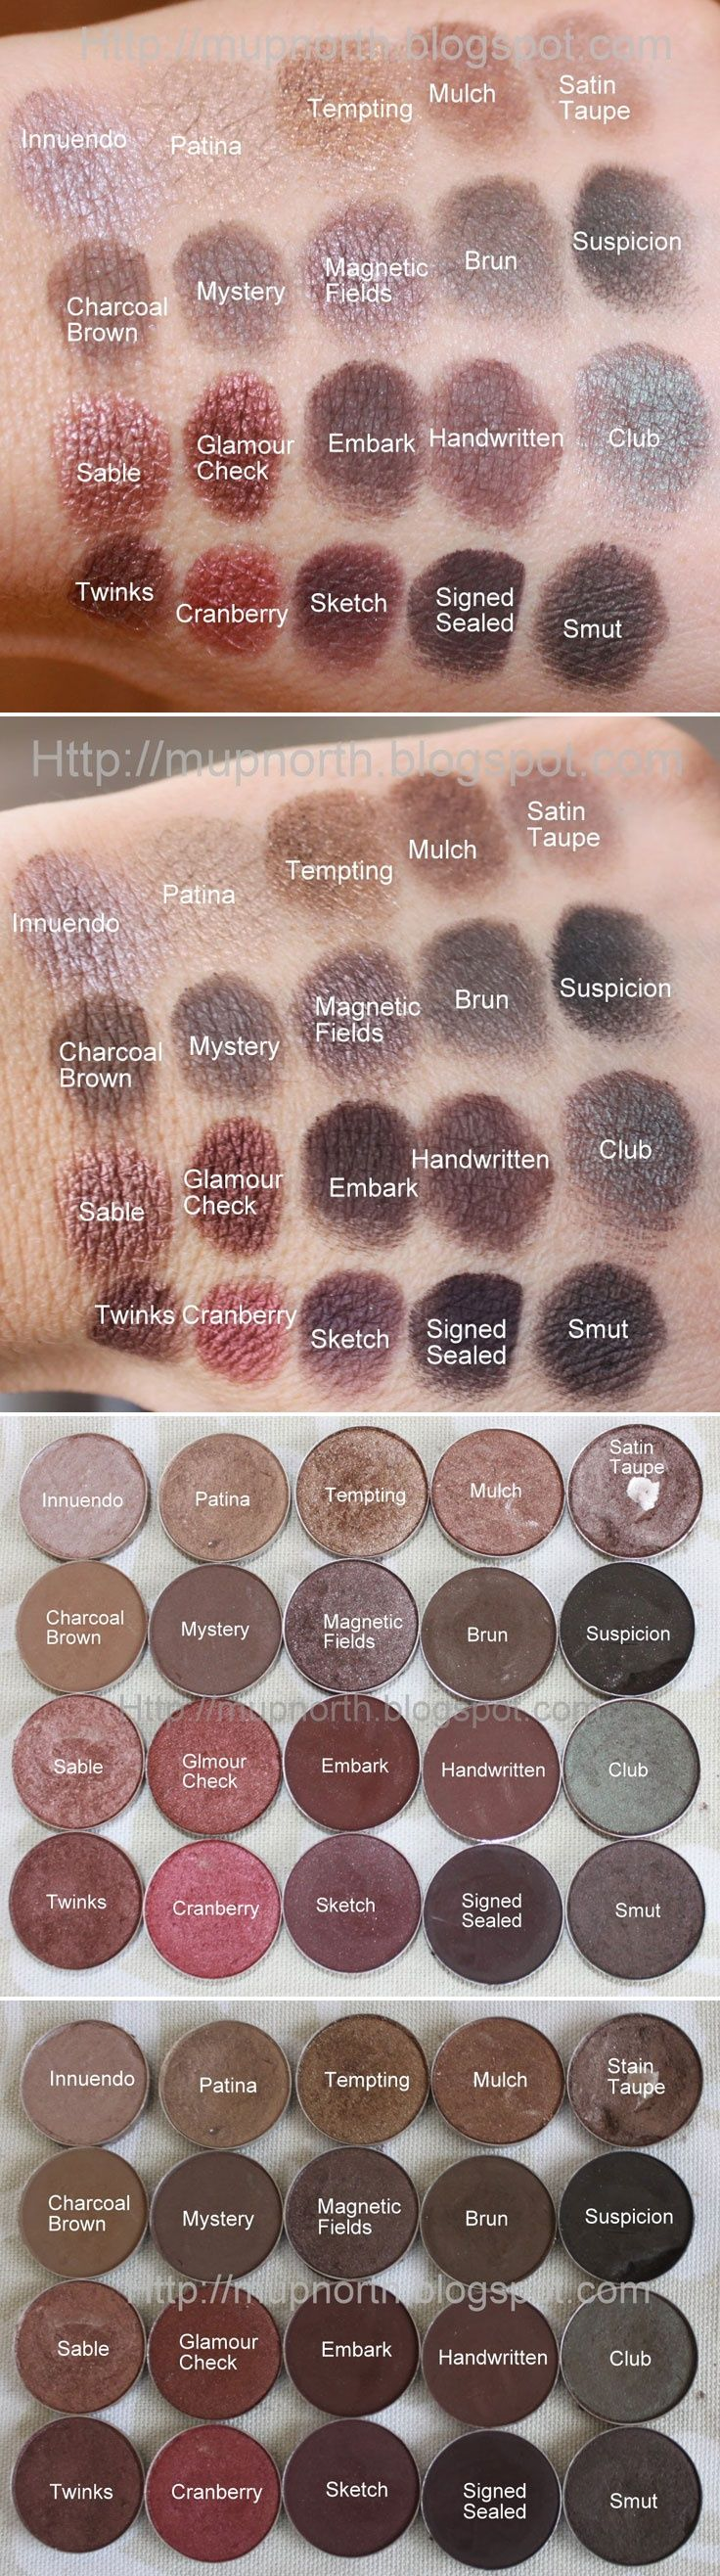 SWATCHES :: MAC Browns & Plums: